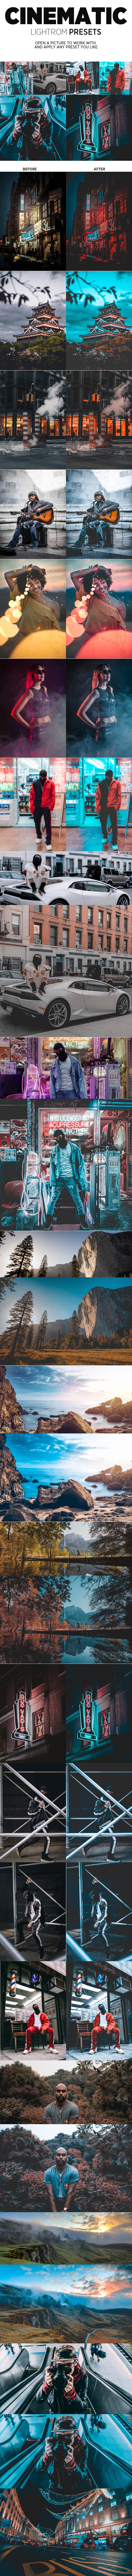 GraphicRiver Stylish Cinematic Lightroom Presets 20820383